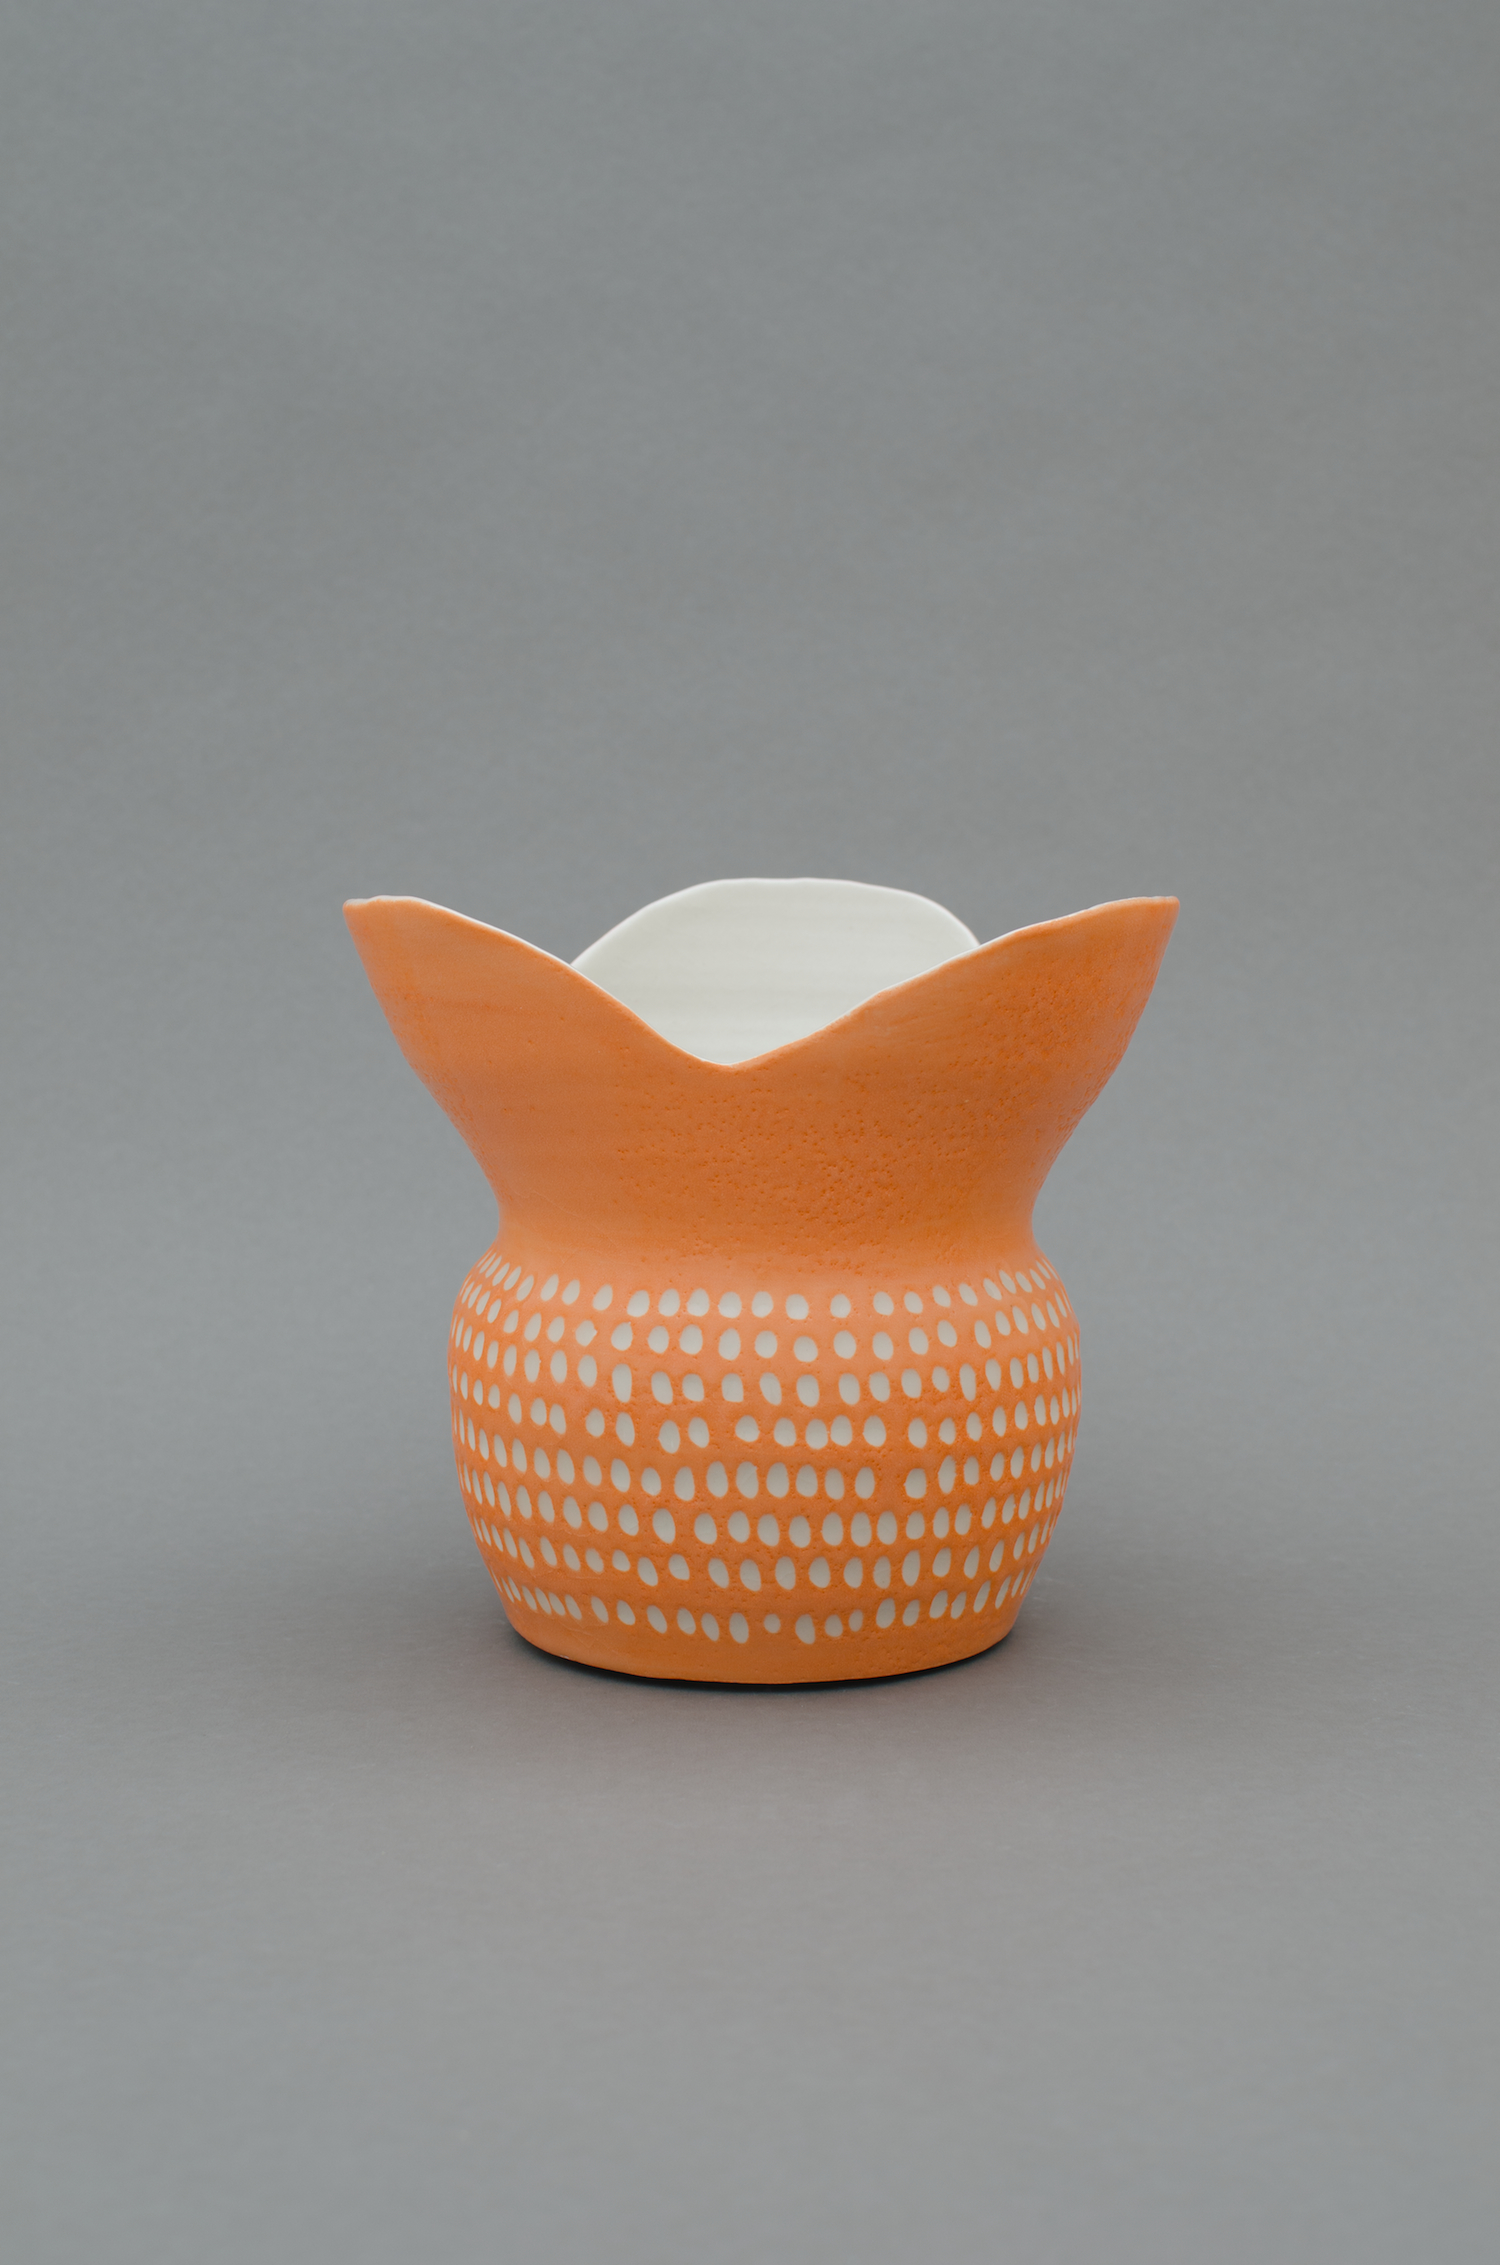 Shio Kusaka  Untitled (orange 8)  2013 Porcelain 7 ½h x 7 ⅞w x 7 ⅞d in SK400